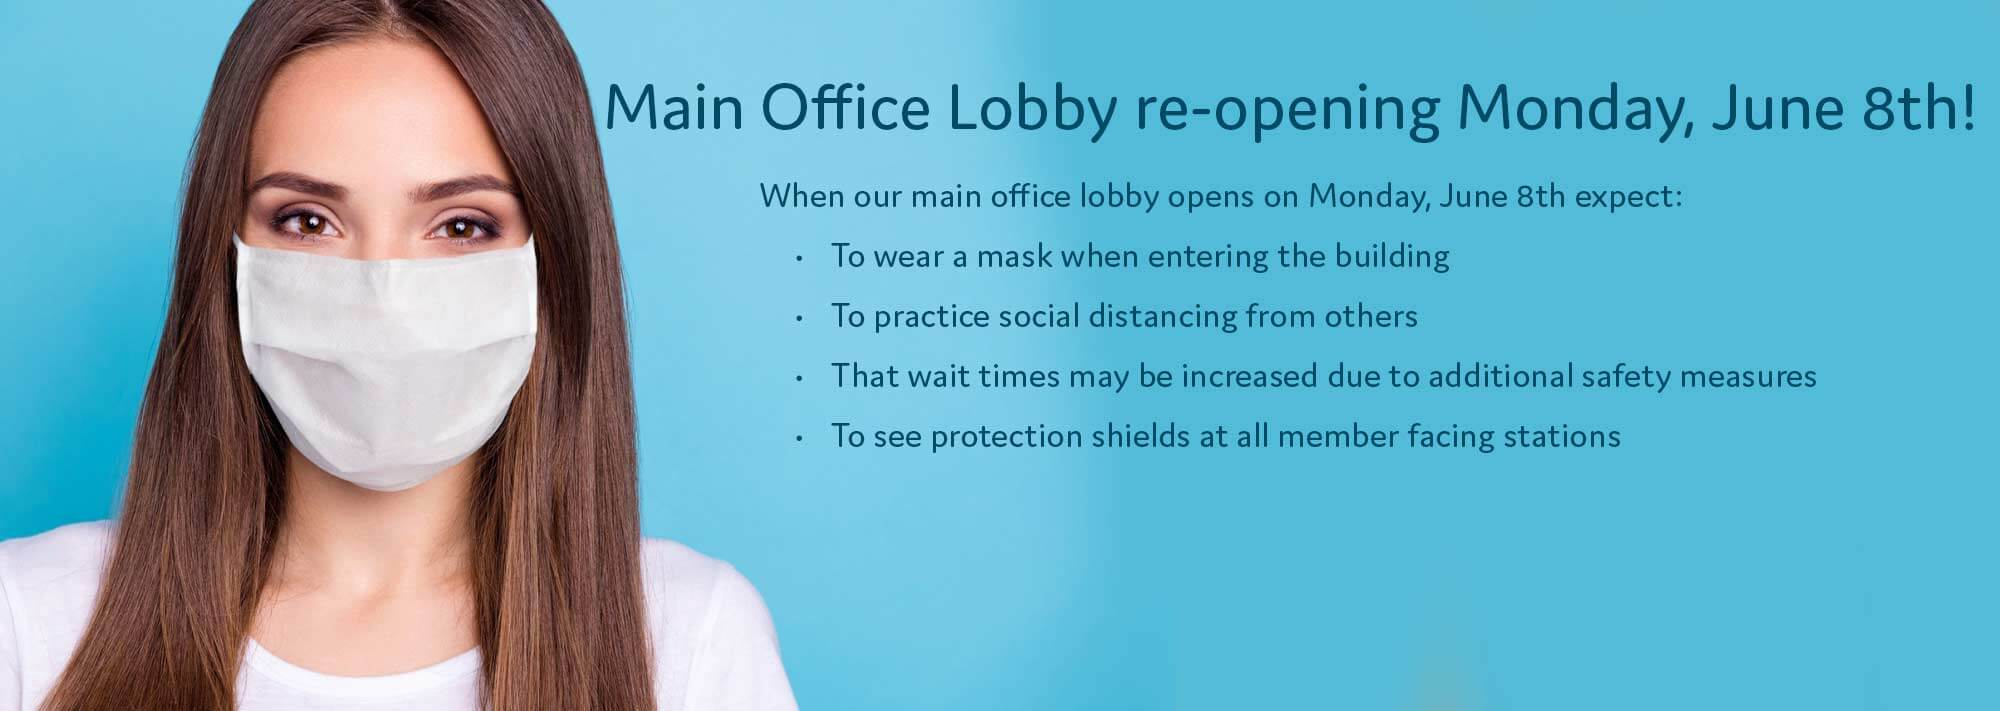 Lobby Re-opening